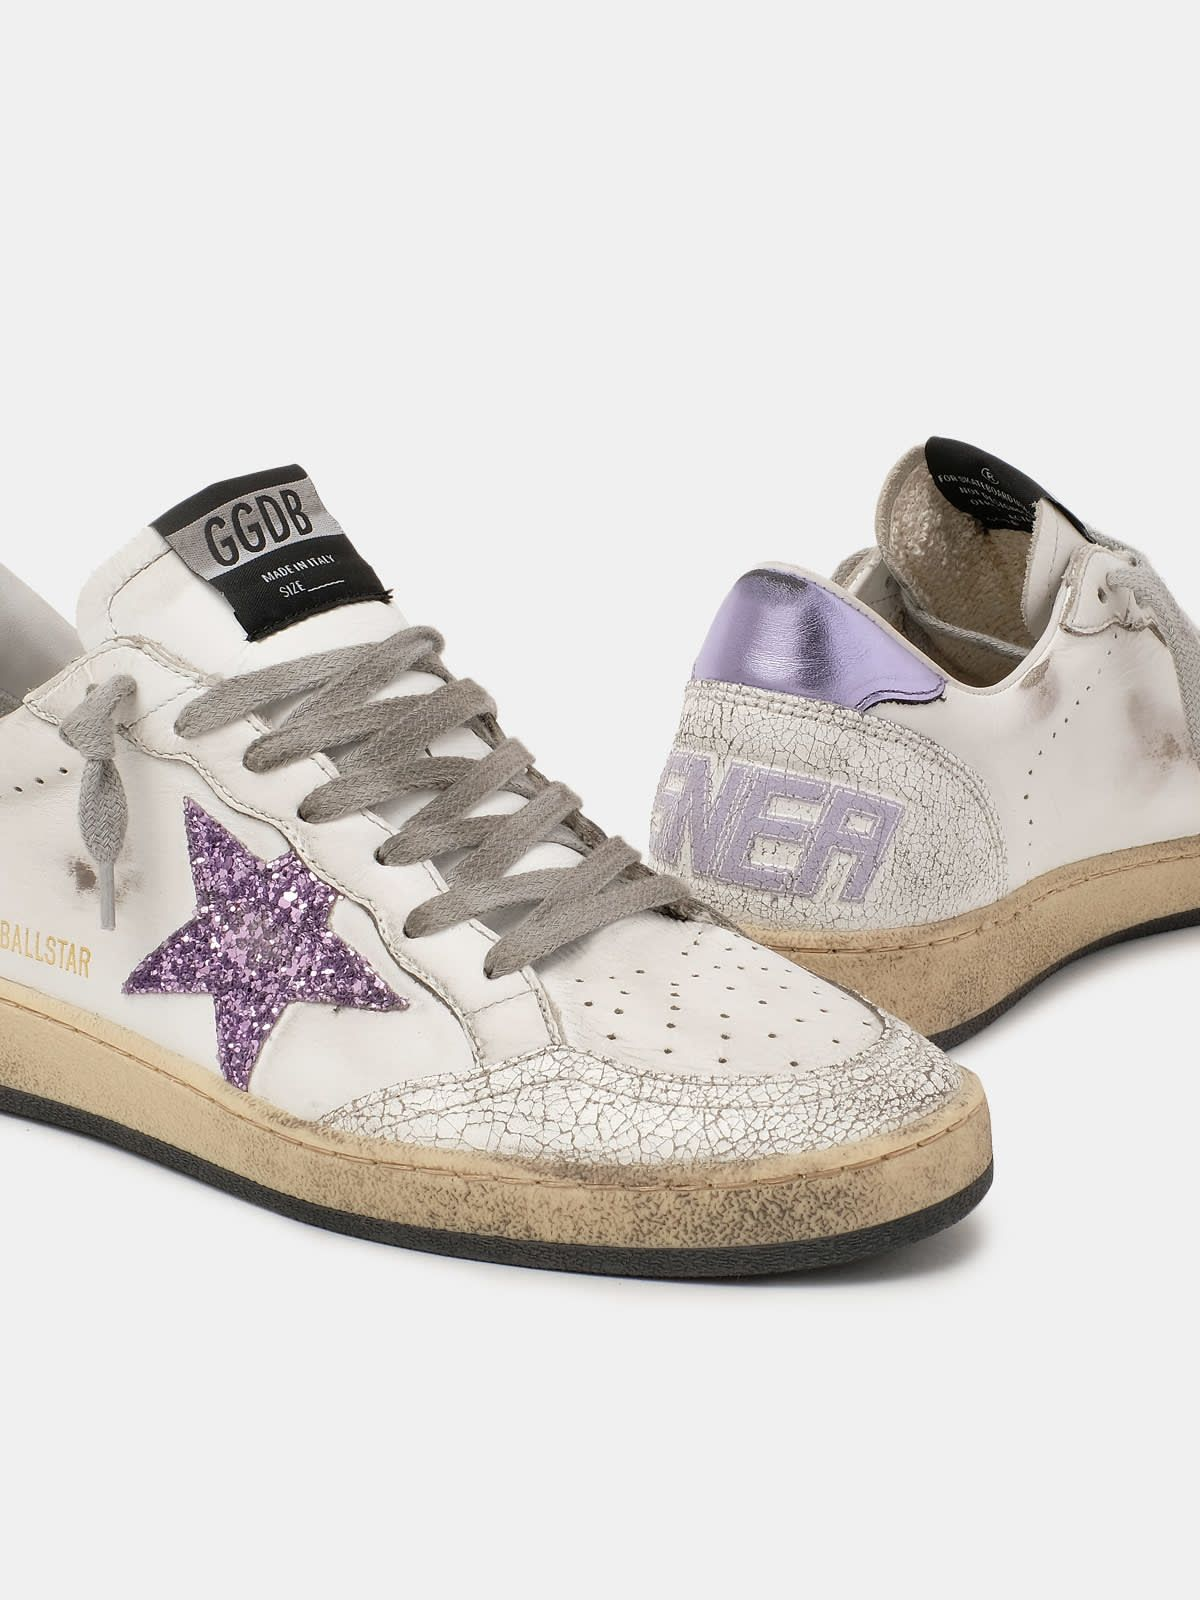 Ball Star sneakers with purple glitter